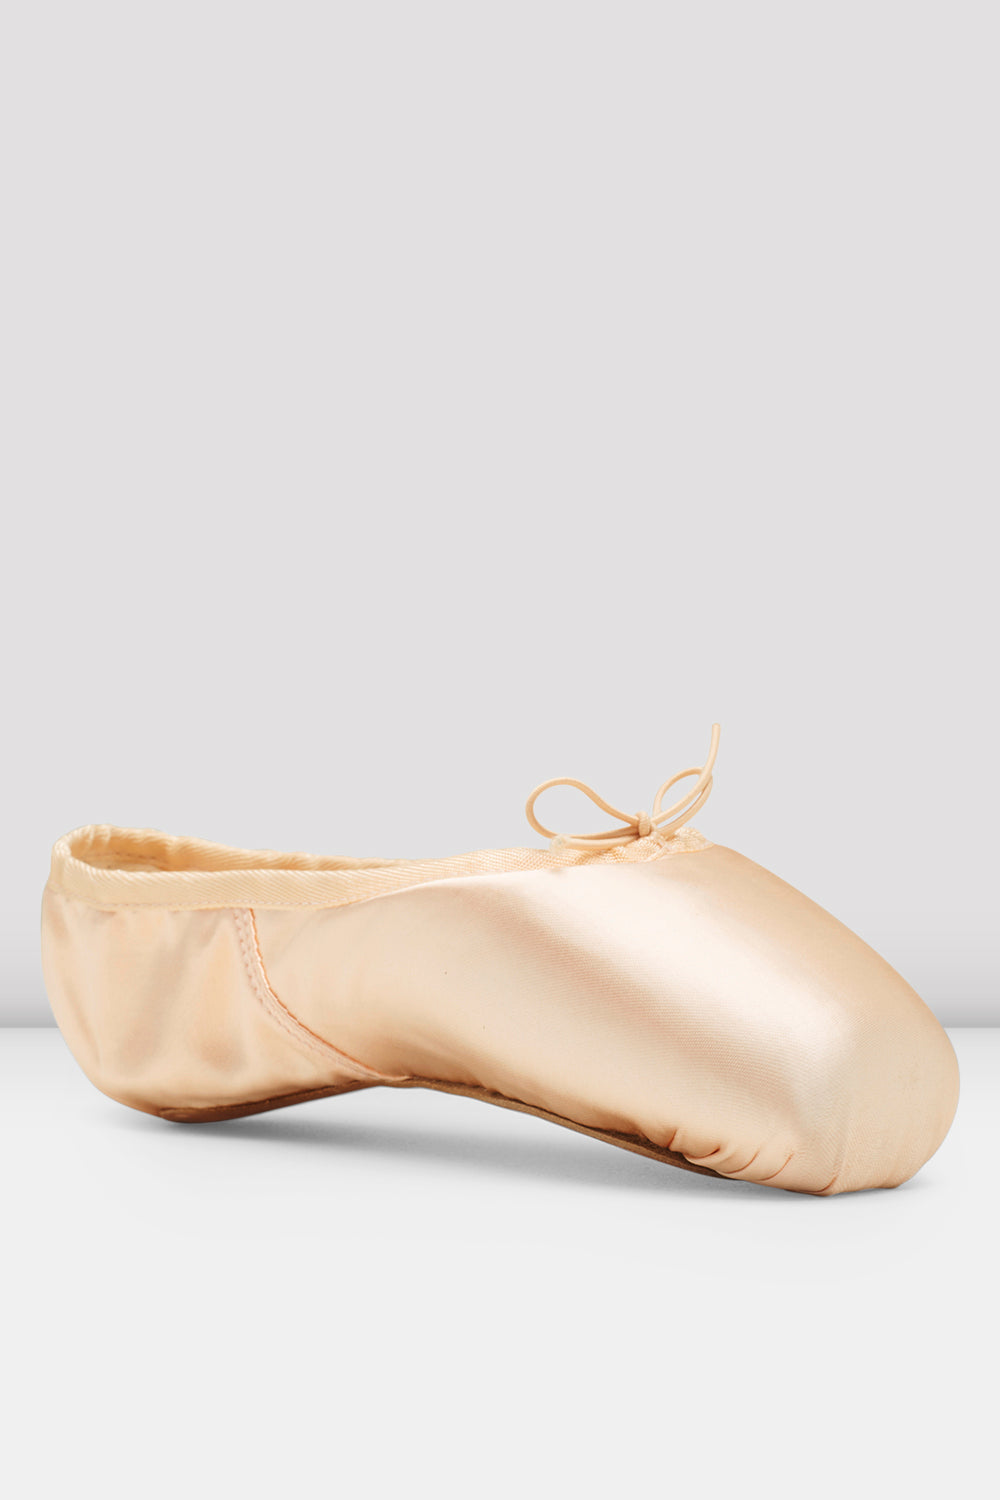 Balance European Pointe Shoes